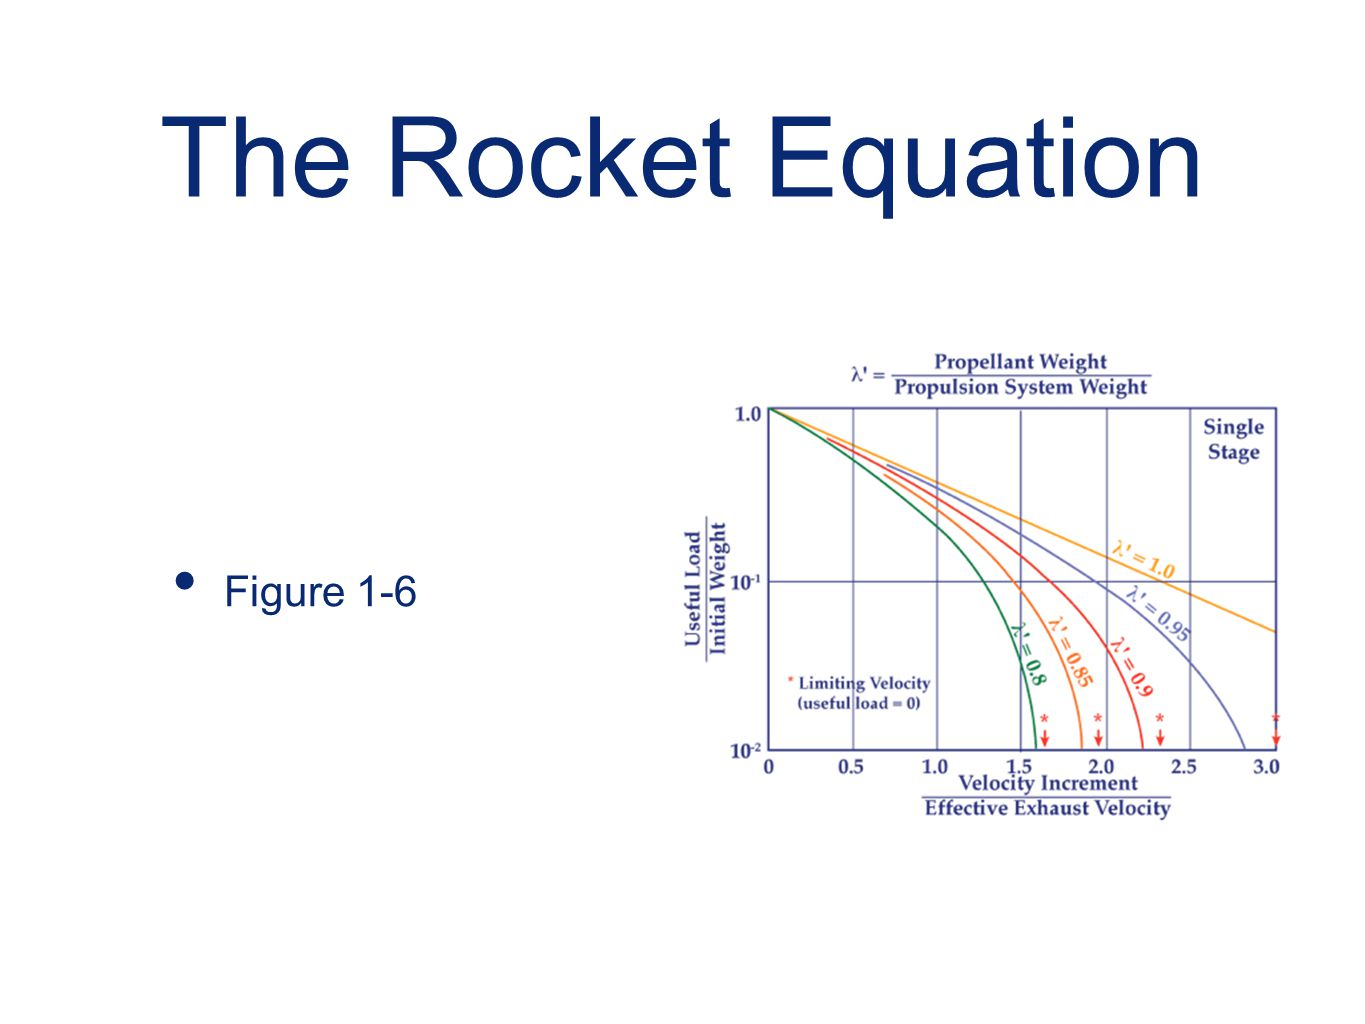 The Rocket Equation Figure 1-6